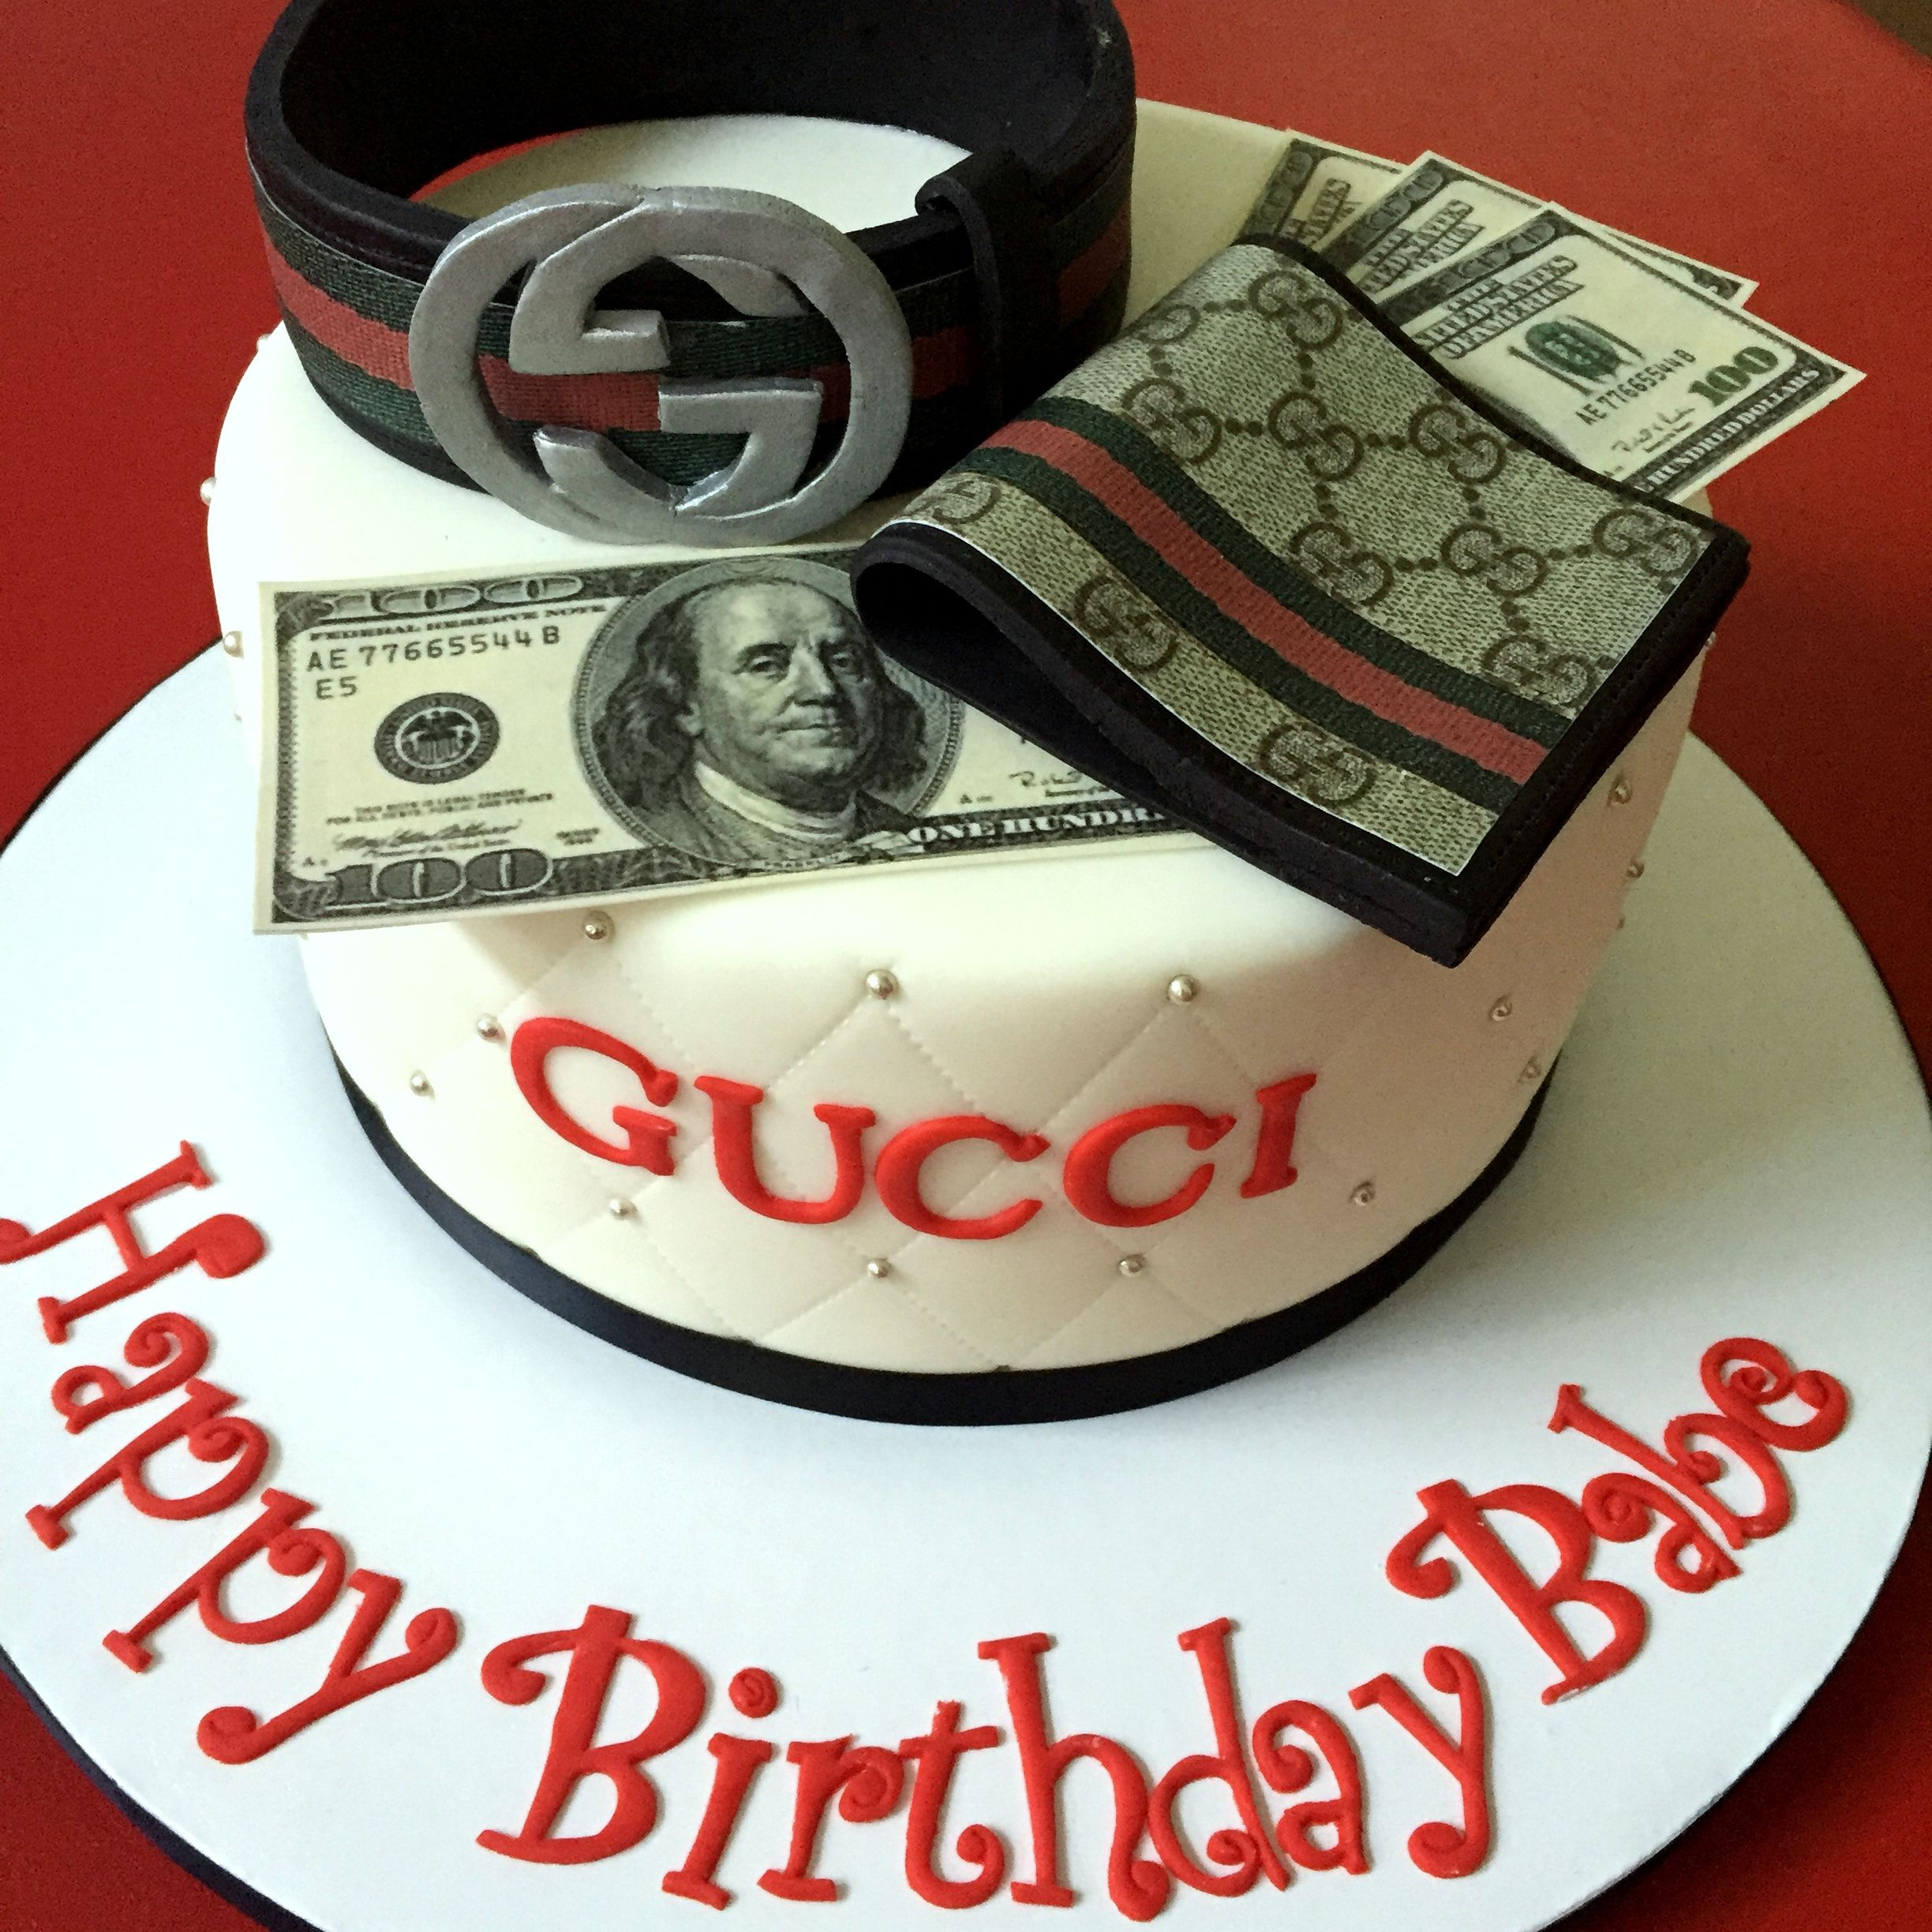 Gucci cake with matching belt and wallet. Made with Cake